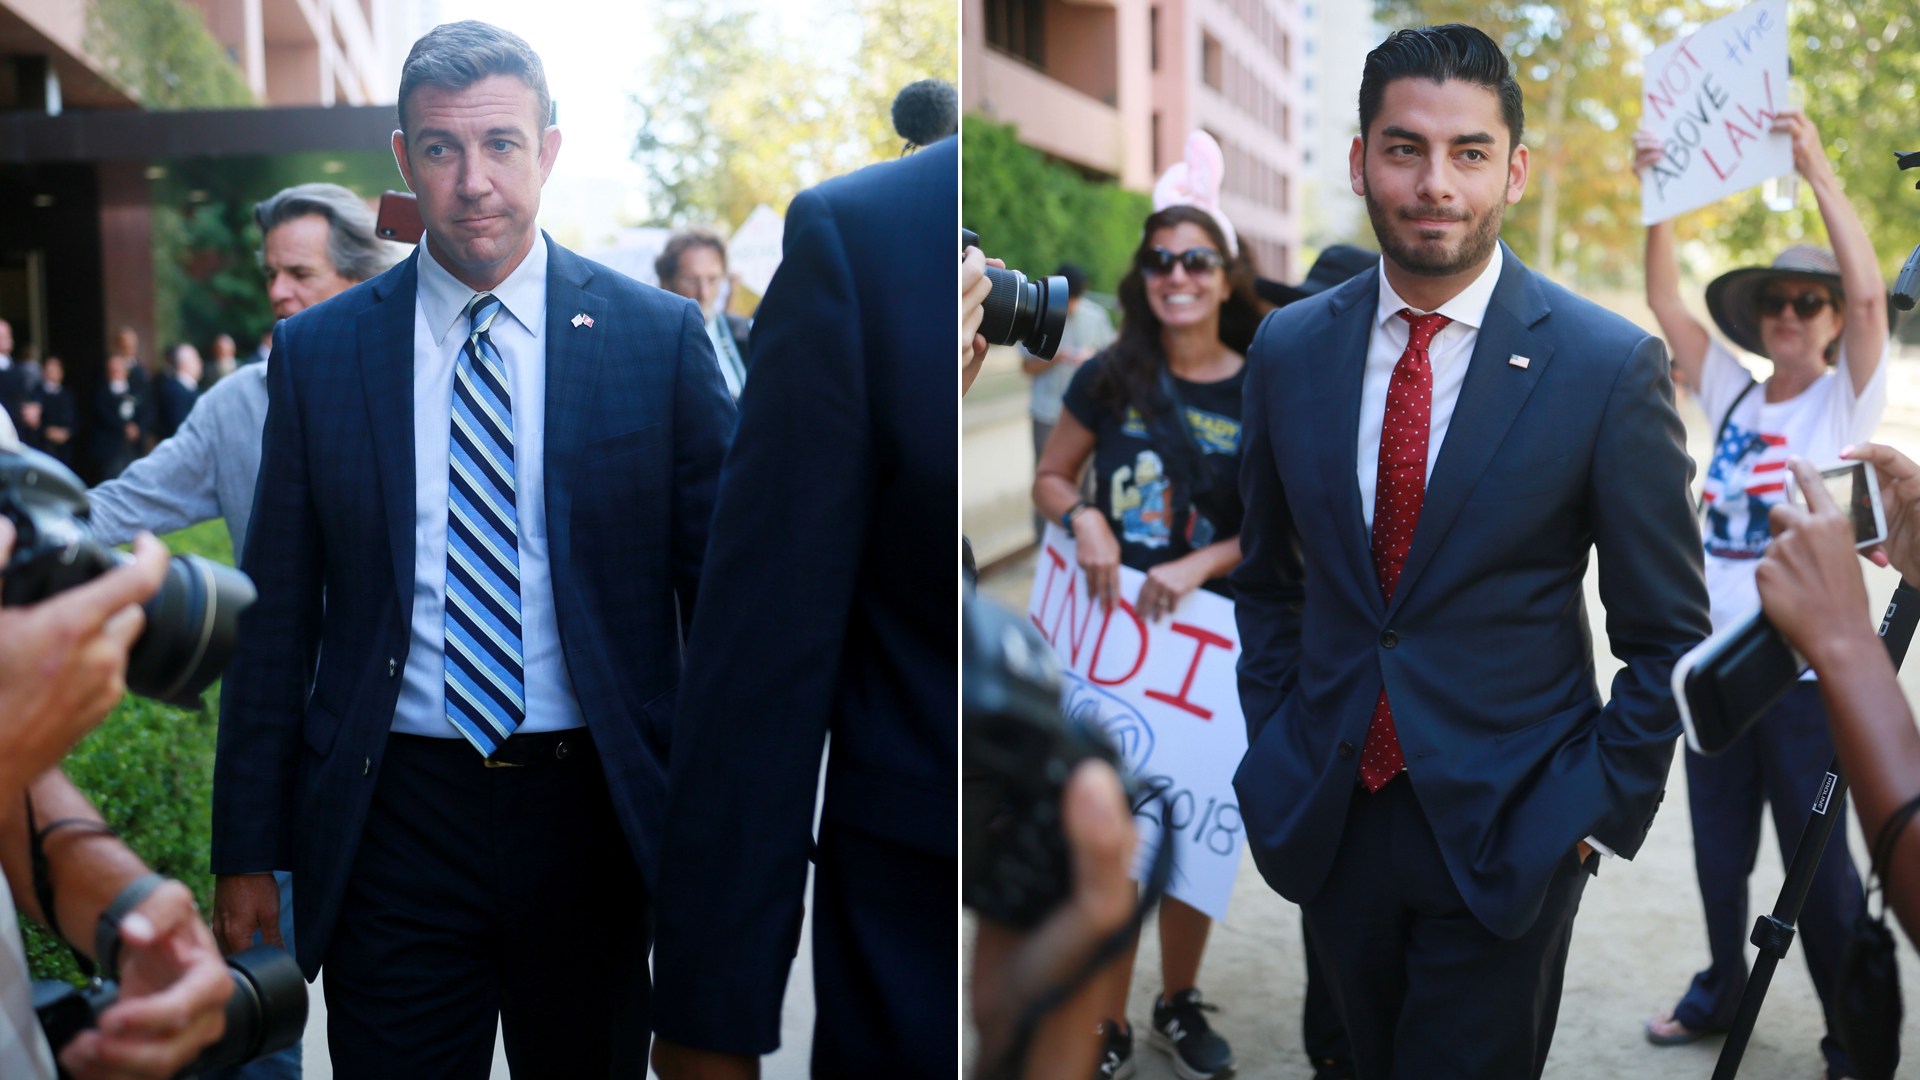 At left, Rep. Duncan Hunter is seen leaving a federal courtroom in San Diego after being arraigned, and at right his opponent, Ammar Campa-Najjar, speaks to reporters outside the courthouse, on Aug. 23, 2018. (Credit: Sandy Huffaker / Getty Images)